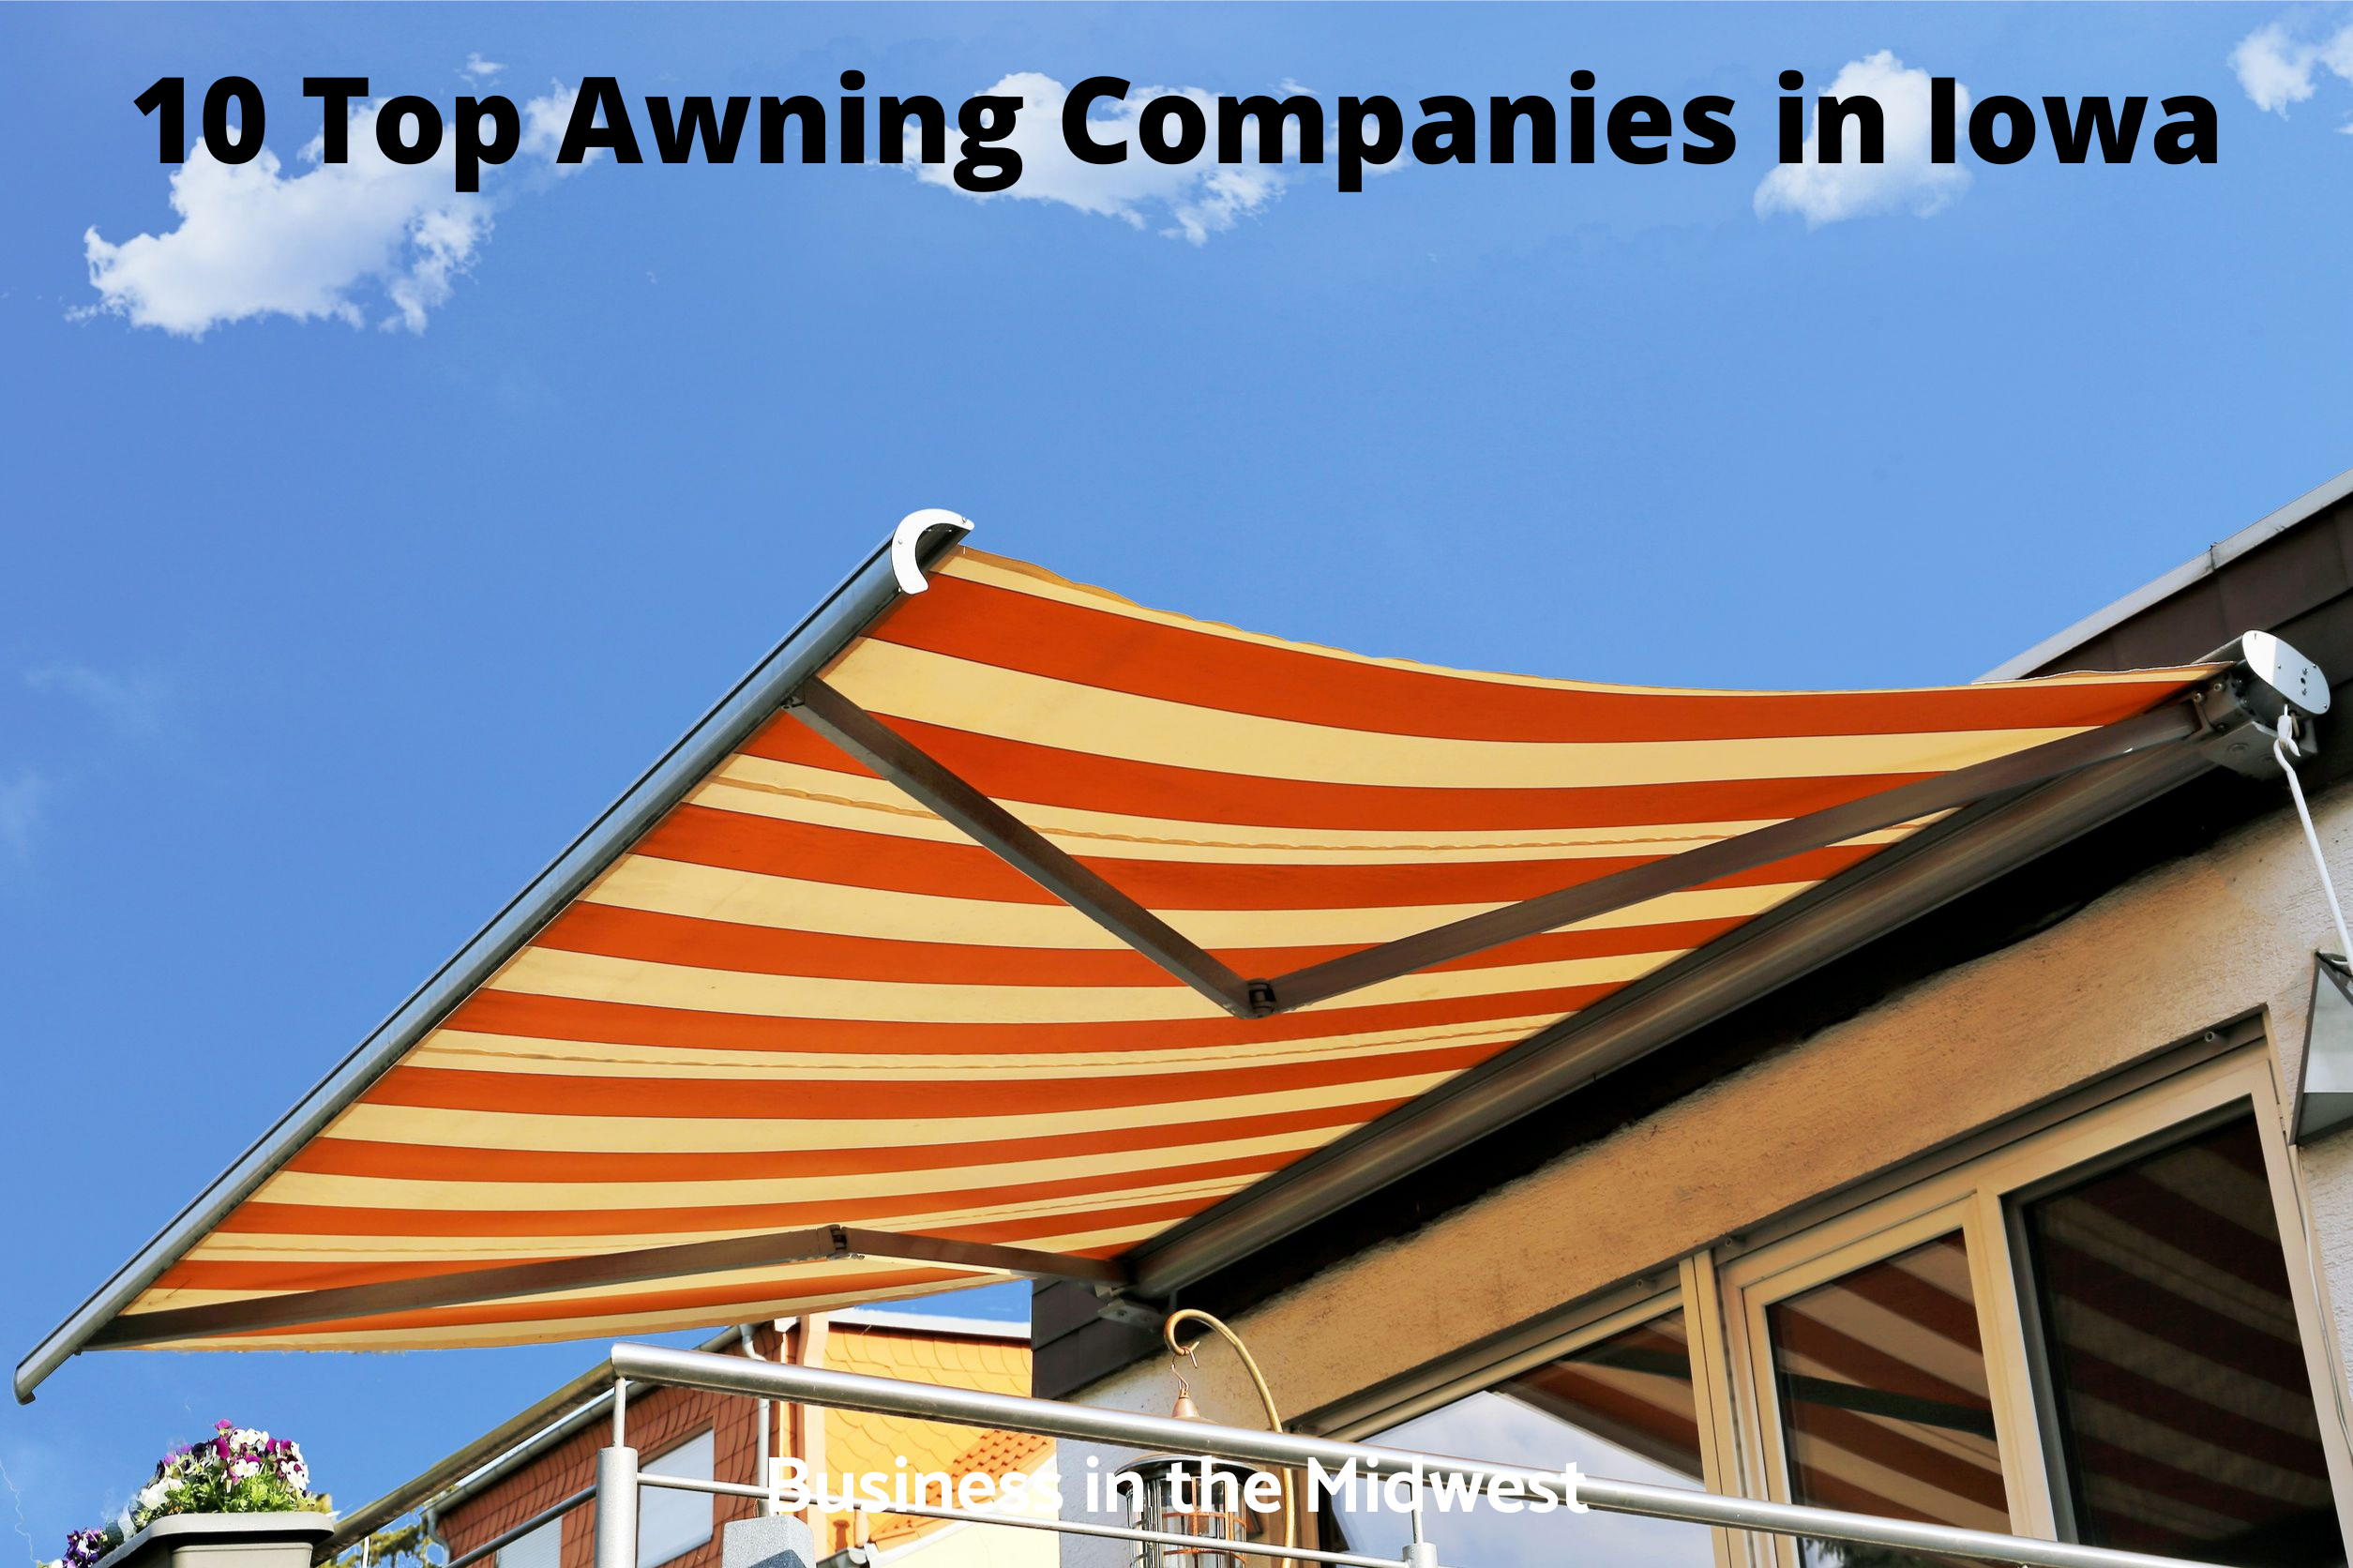 Awning Companies in Iowa